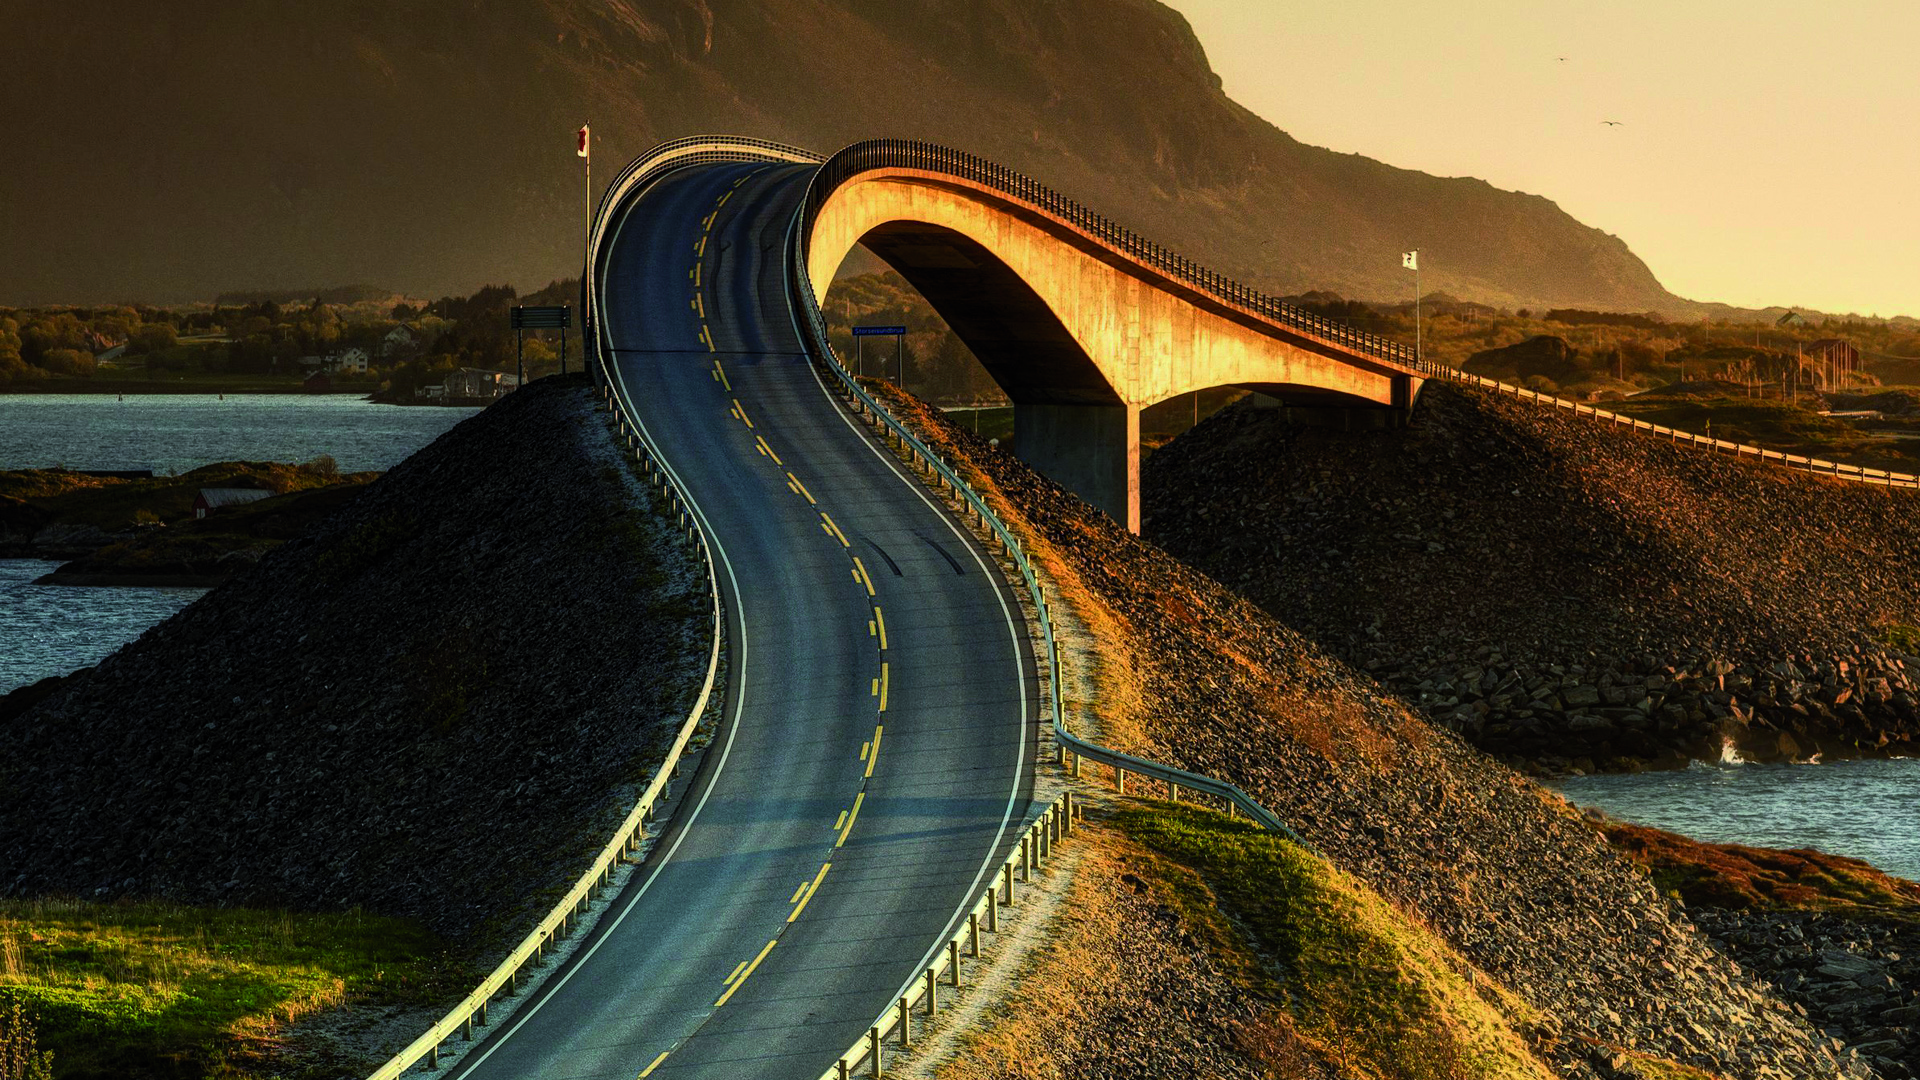 Atlantic road - Noruega - Flickr - Autor Ky0n Cheng